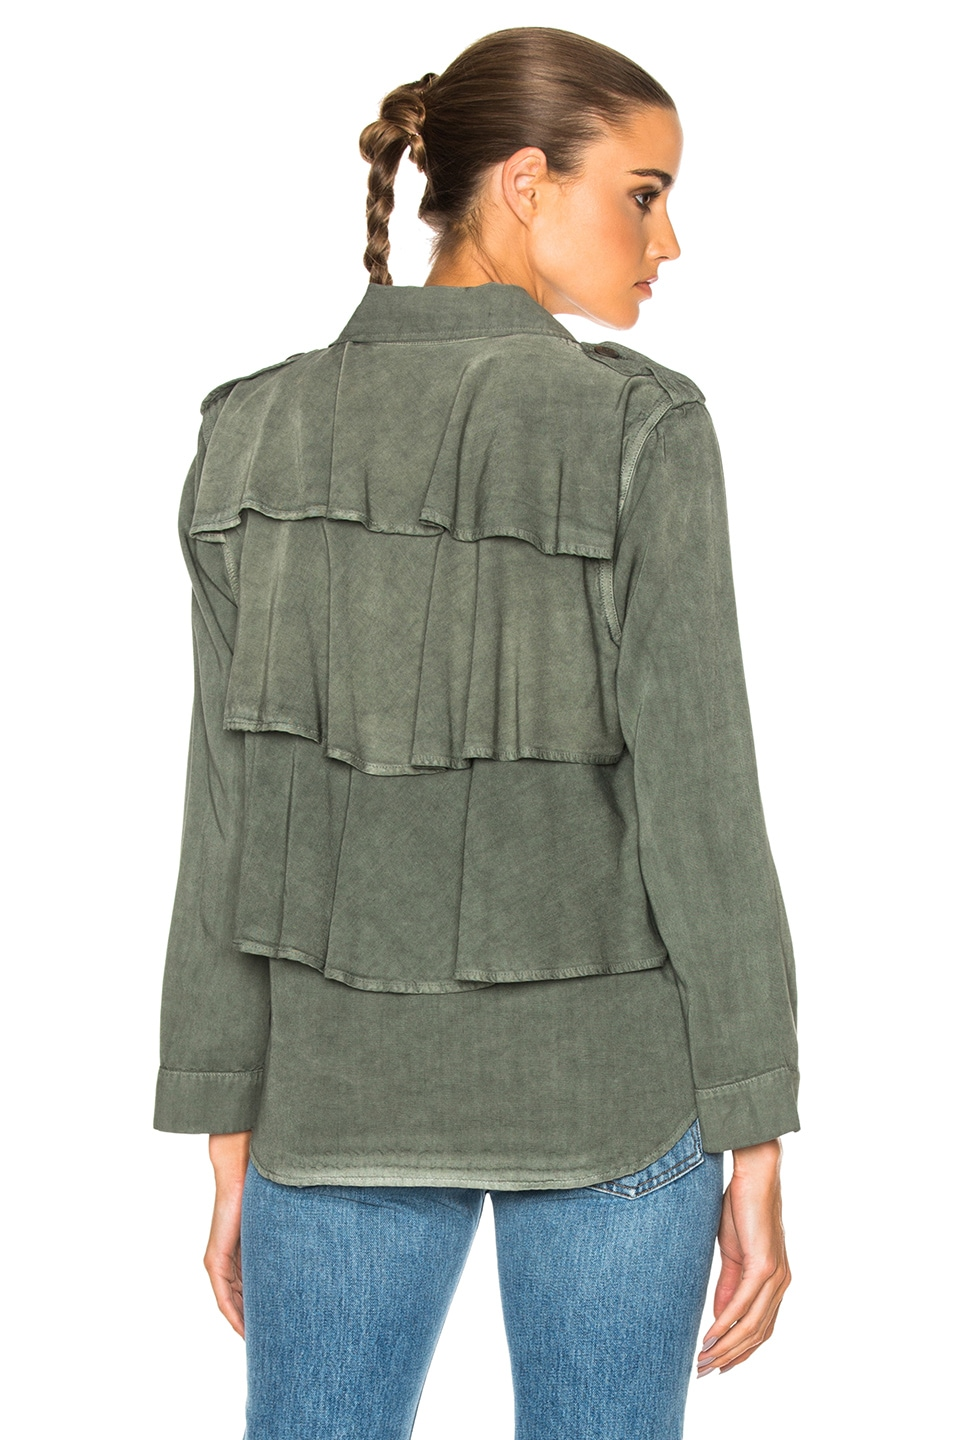 Image 1 of AMO Ruffle Army Twist Shirt Jacket in Surplus